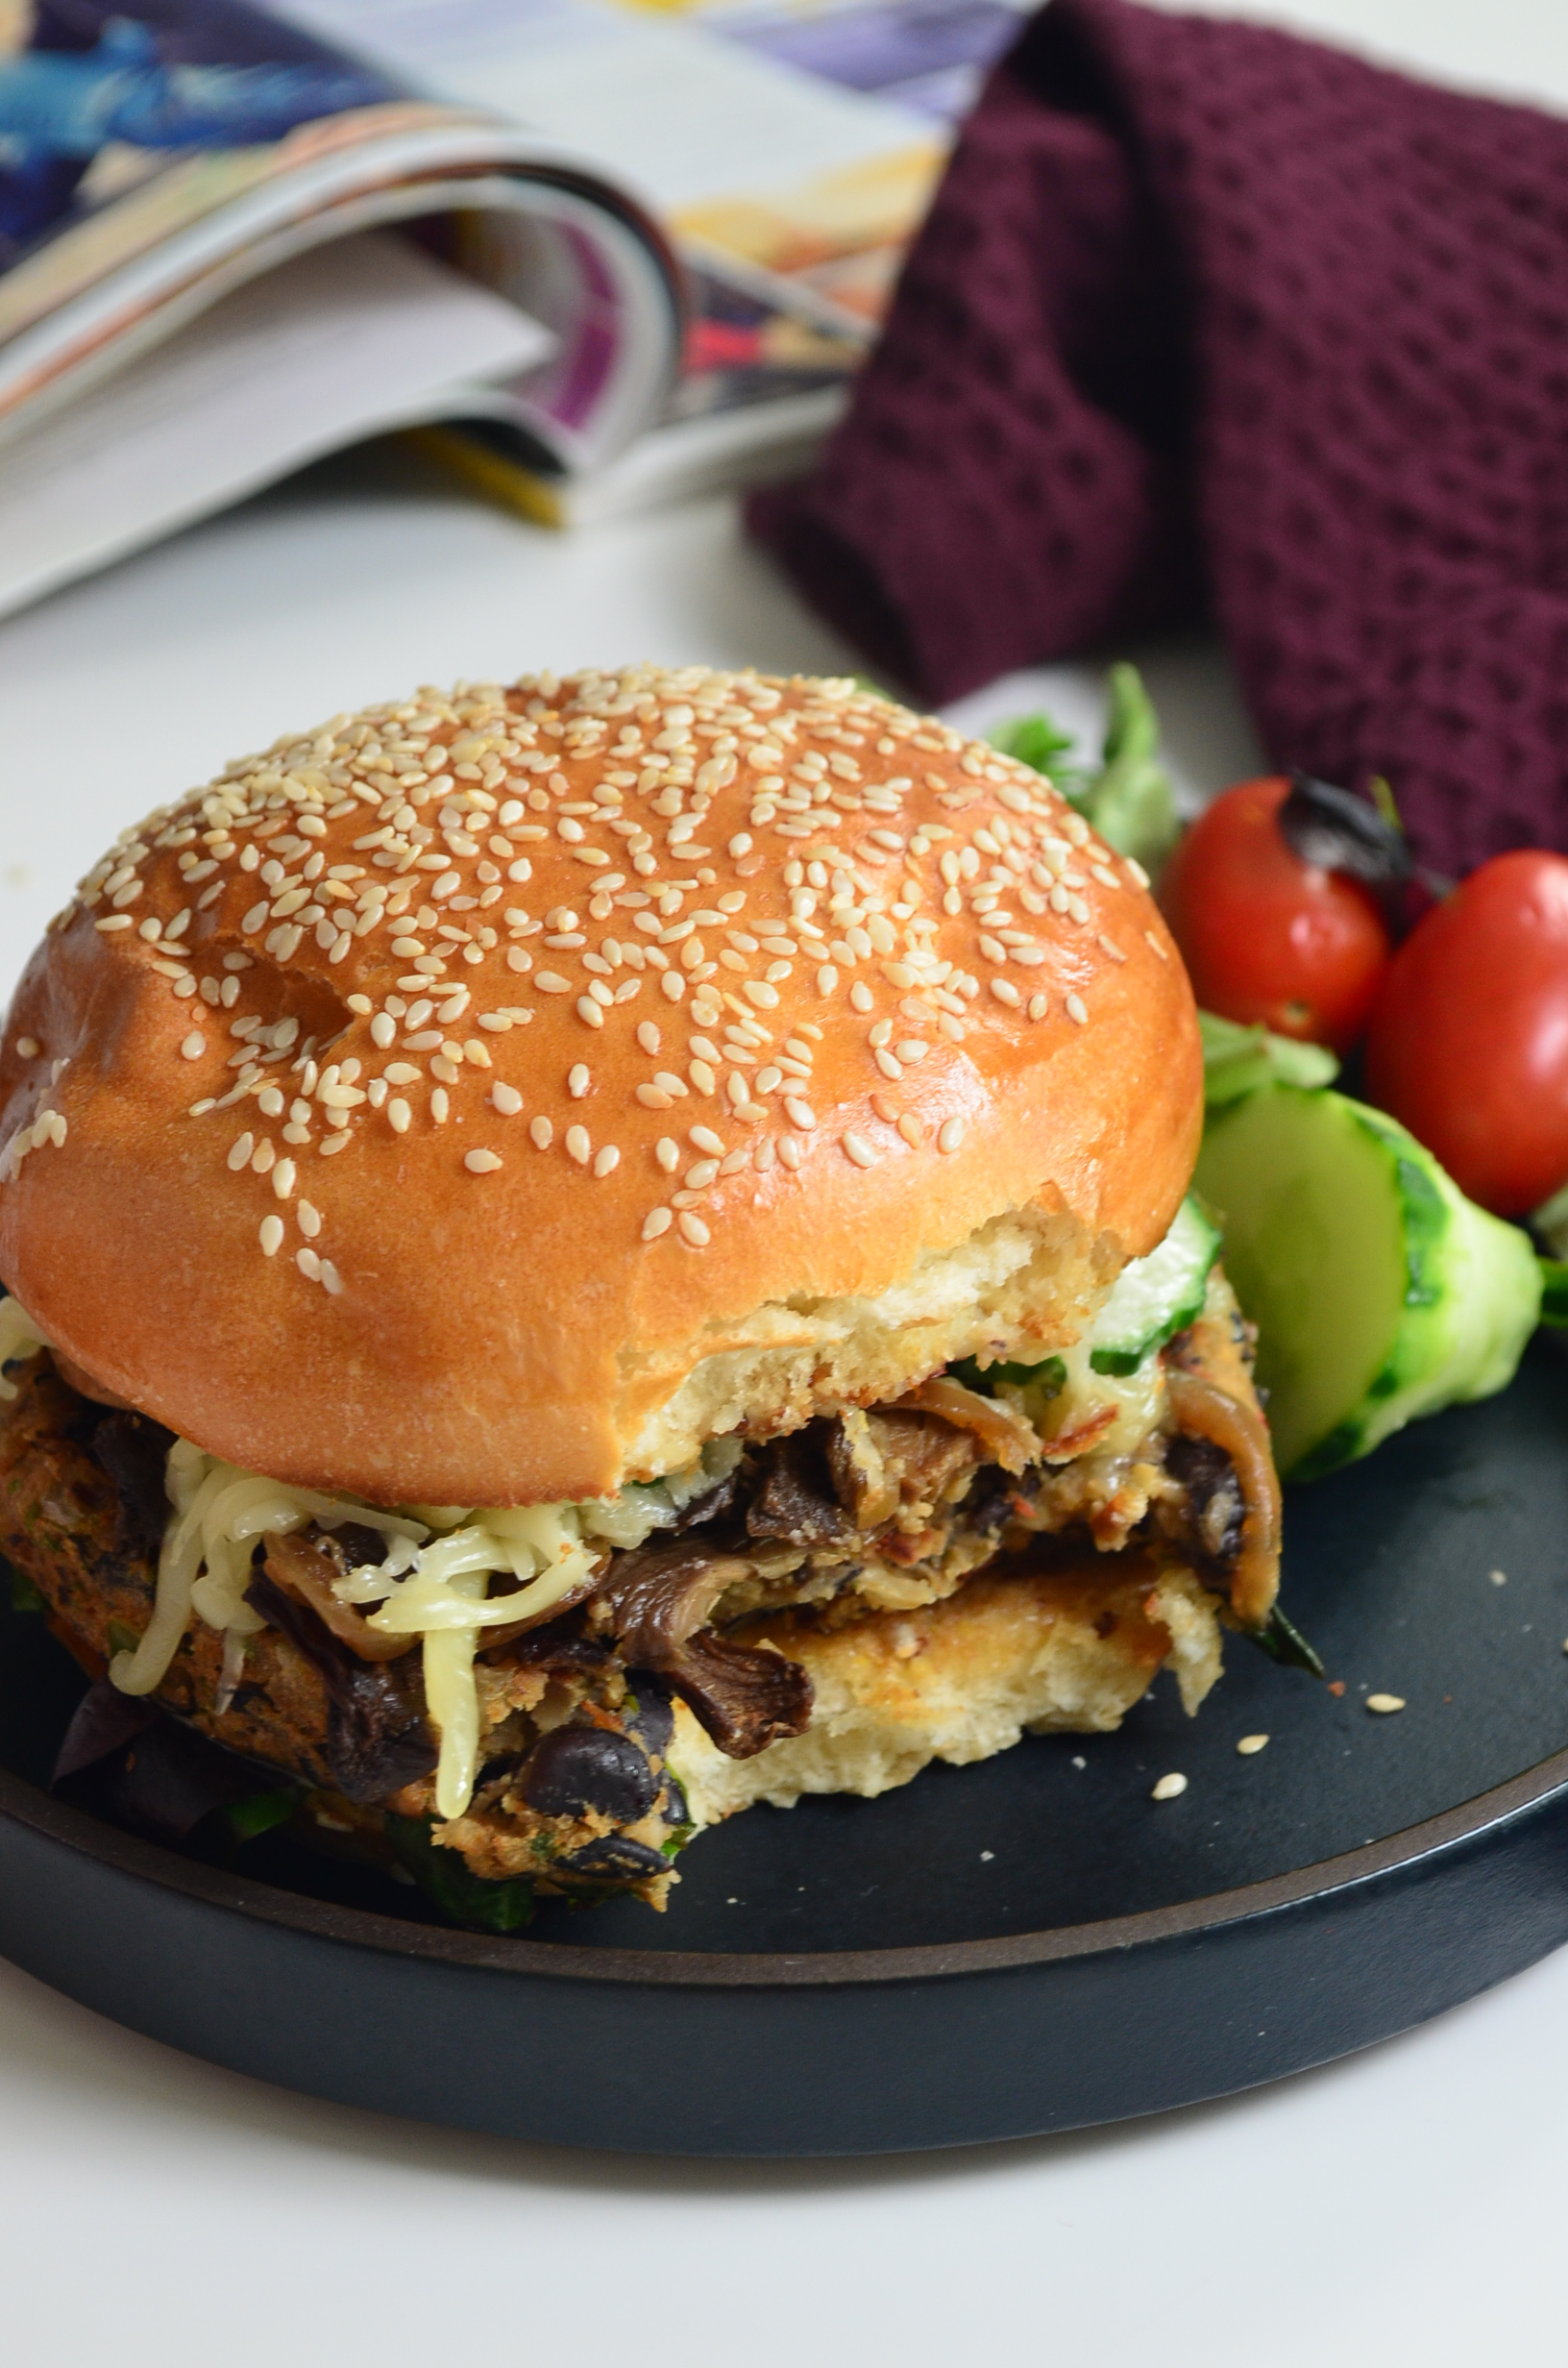 Small Batch Black Bean and Quinoa Burger